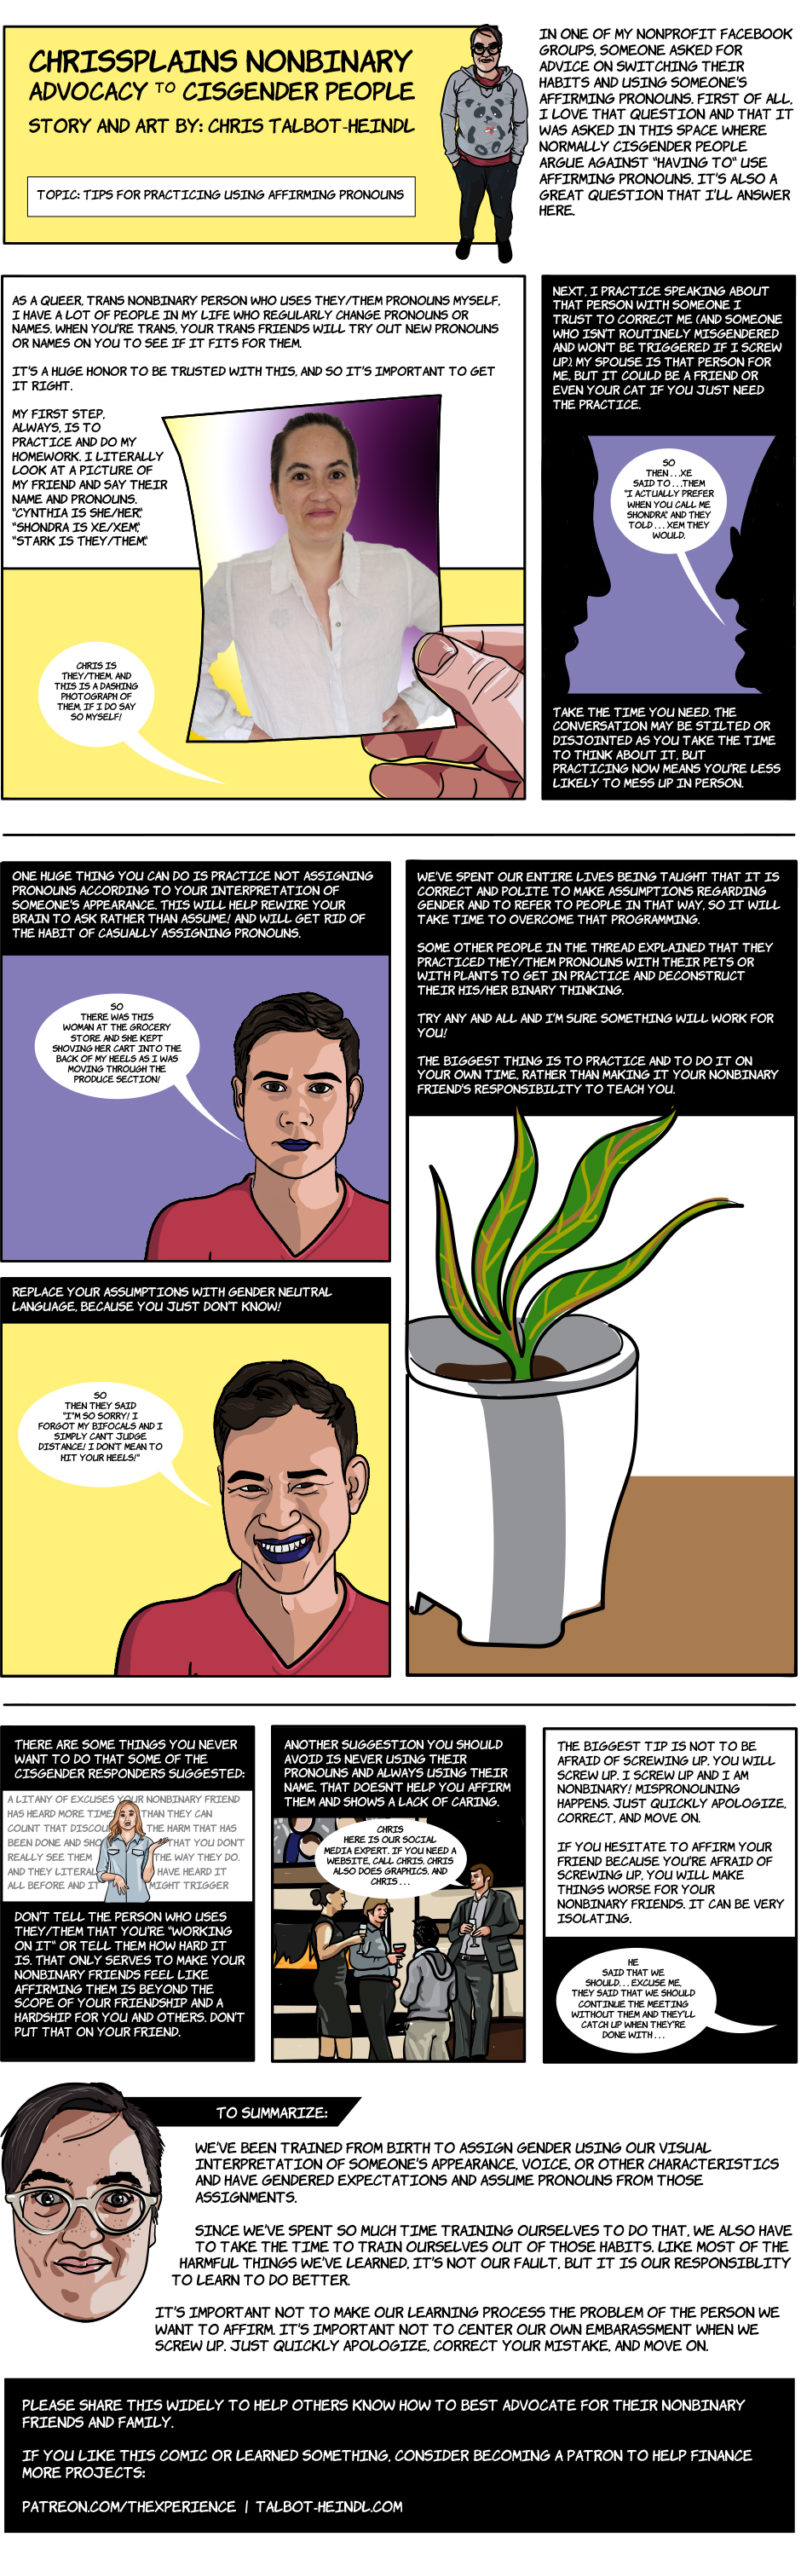 Chrissplains Nonbinary Advocacy to Cisgender People educomic. Topic: Tips for Practicing Using Affirming Pronouns